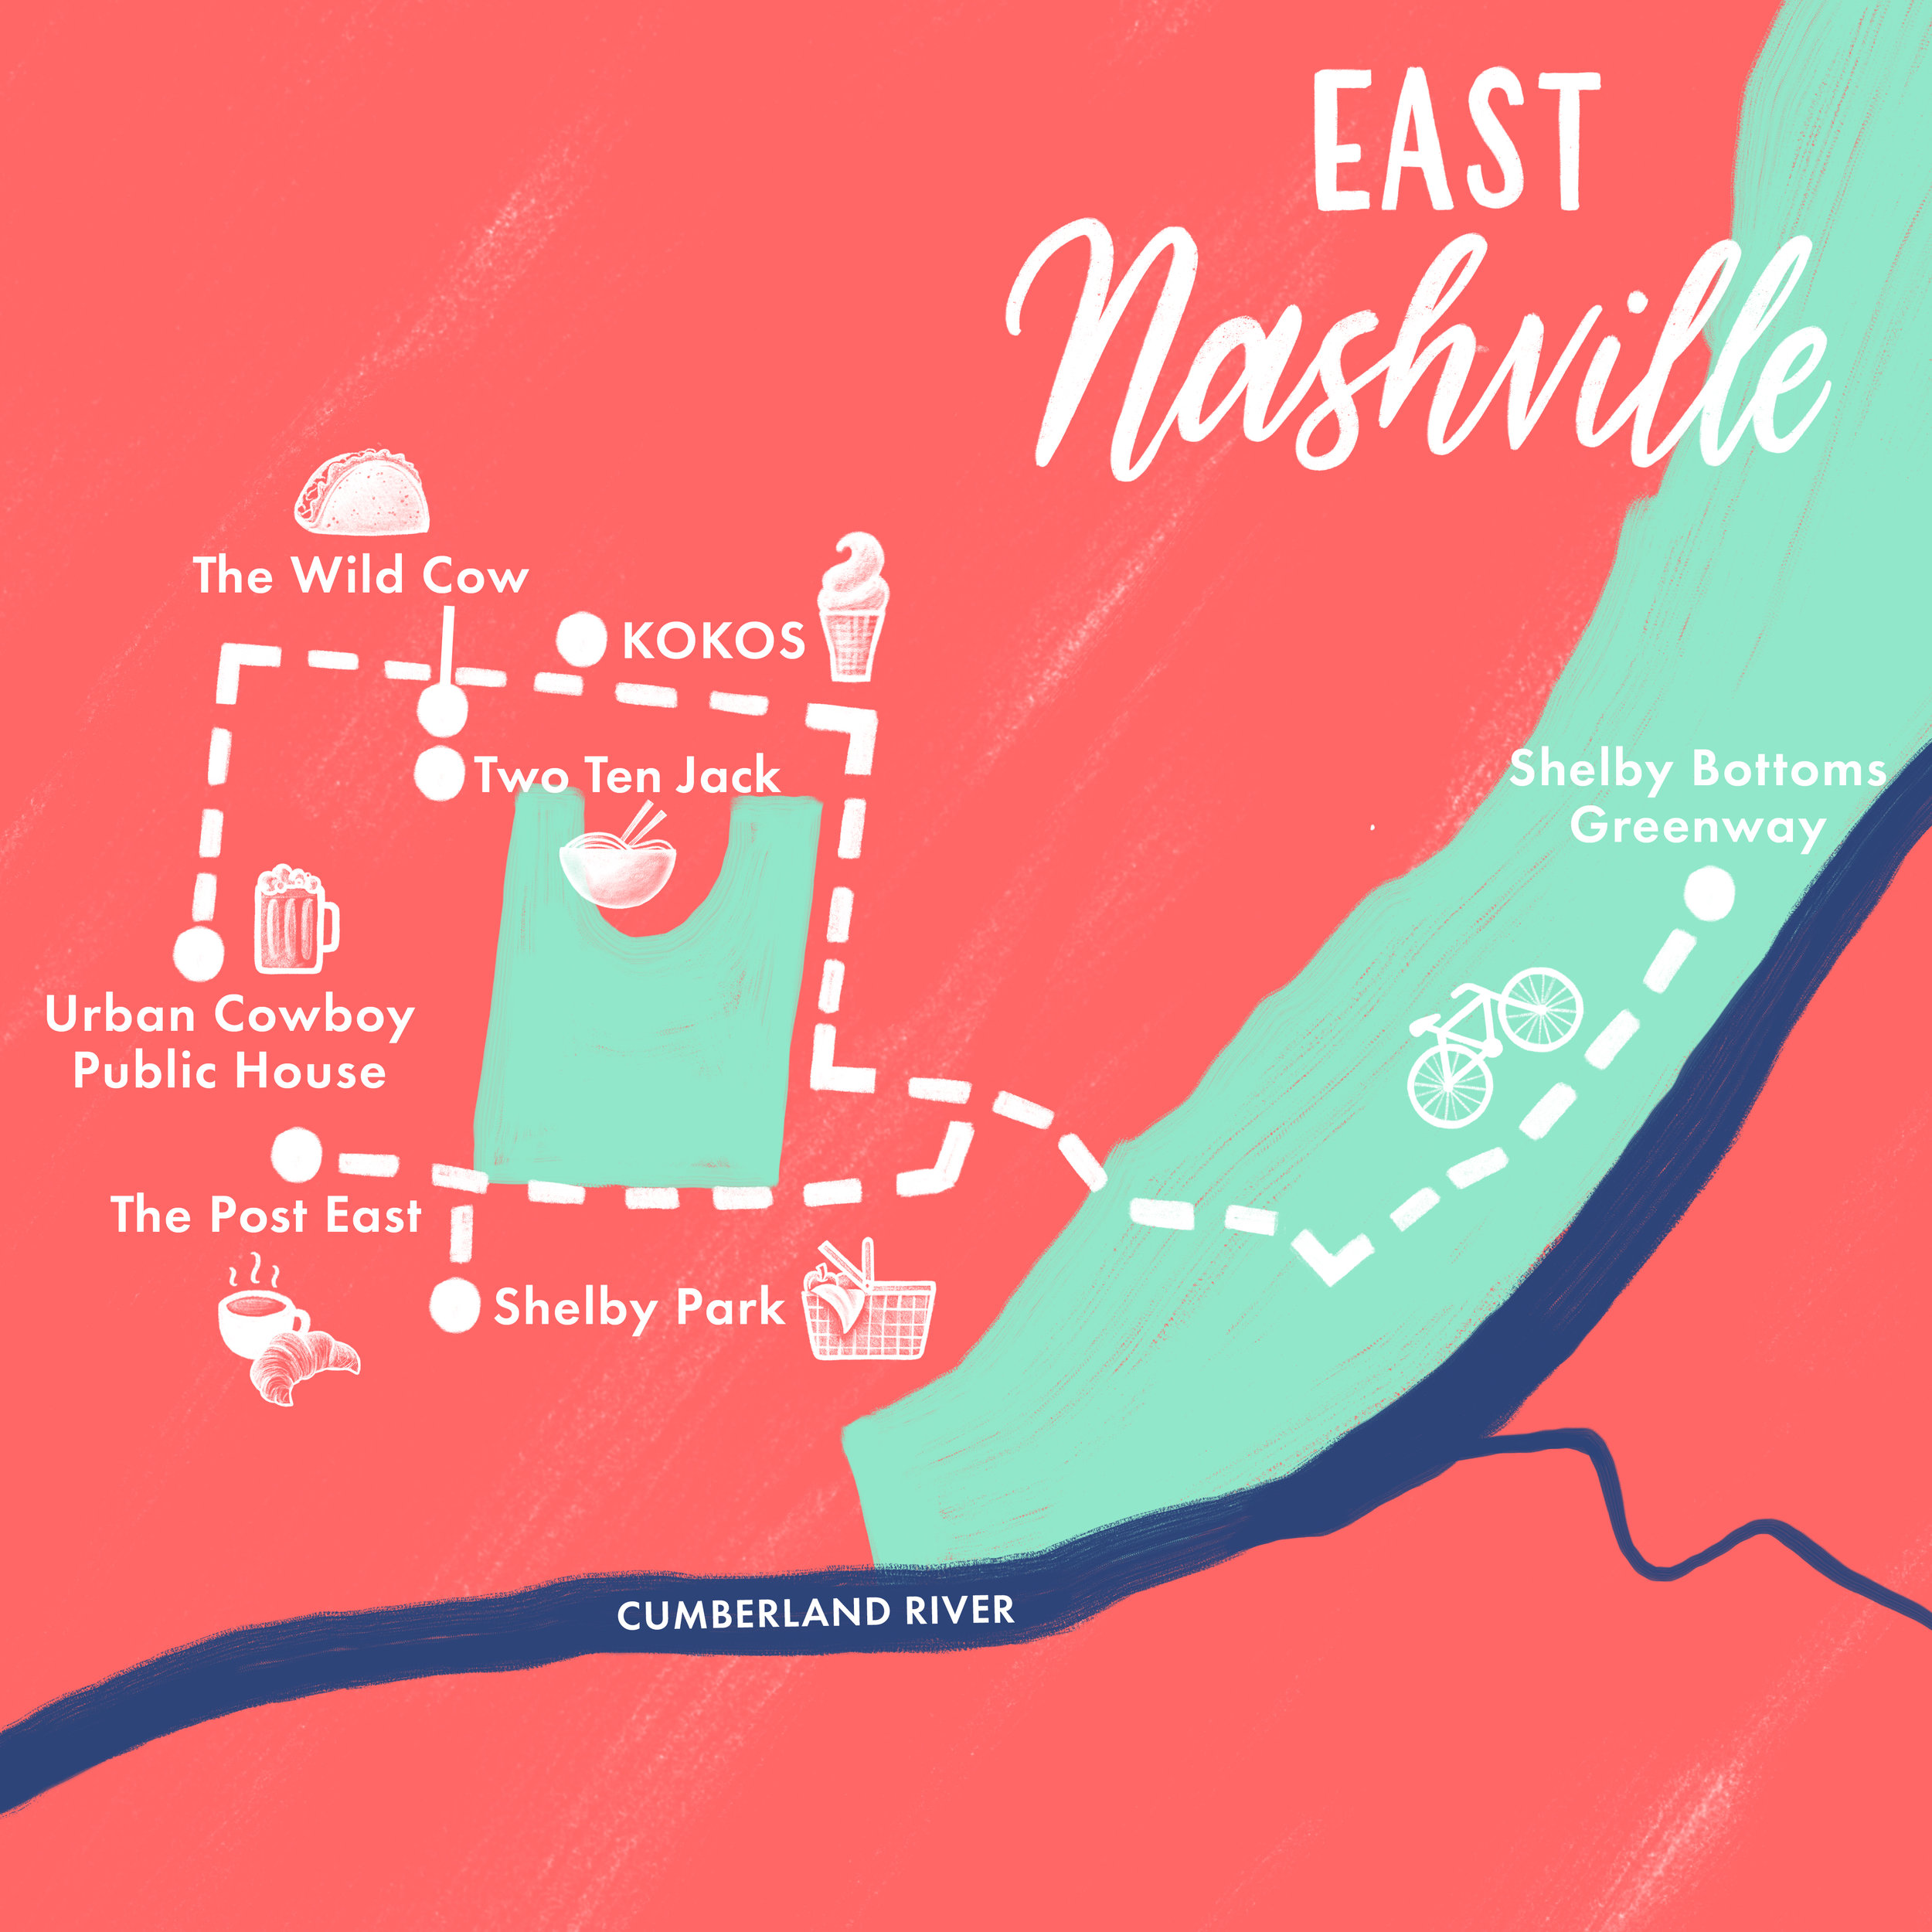 East Nashville Map.jpg